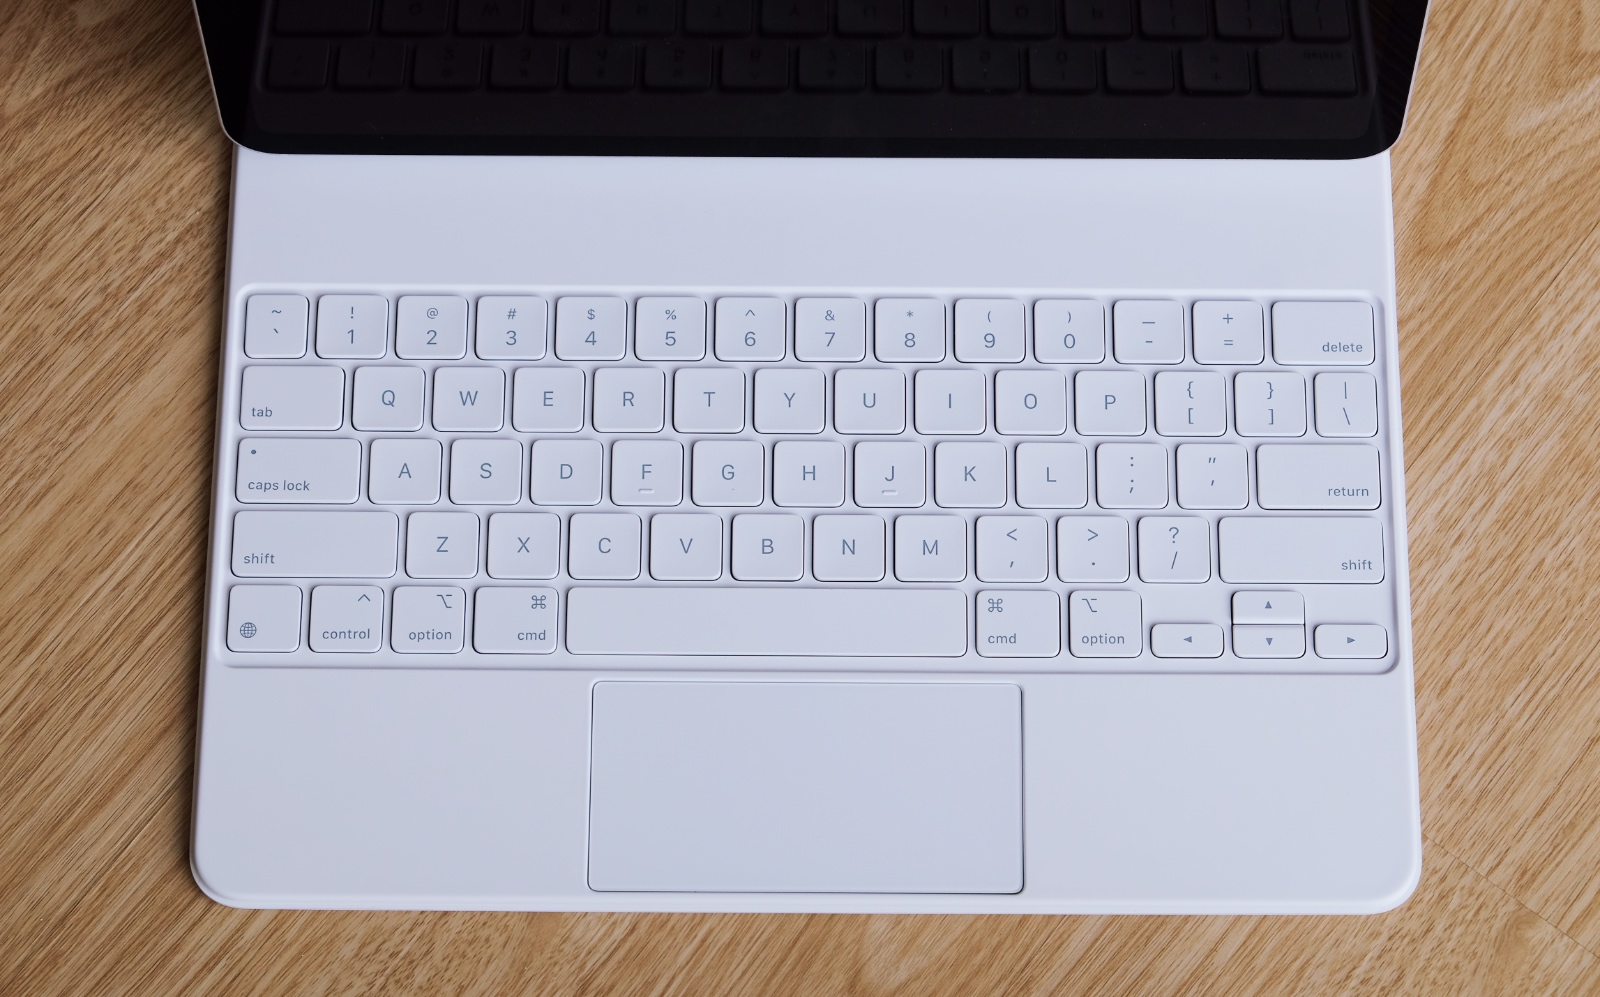 The white Magic Keyboard goes well with the silver iPad Pro.